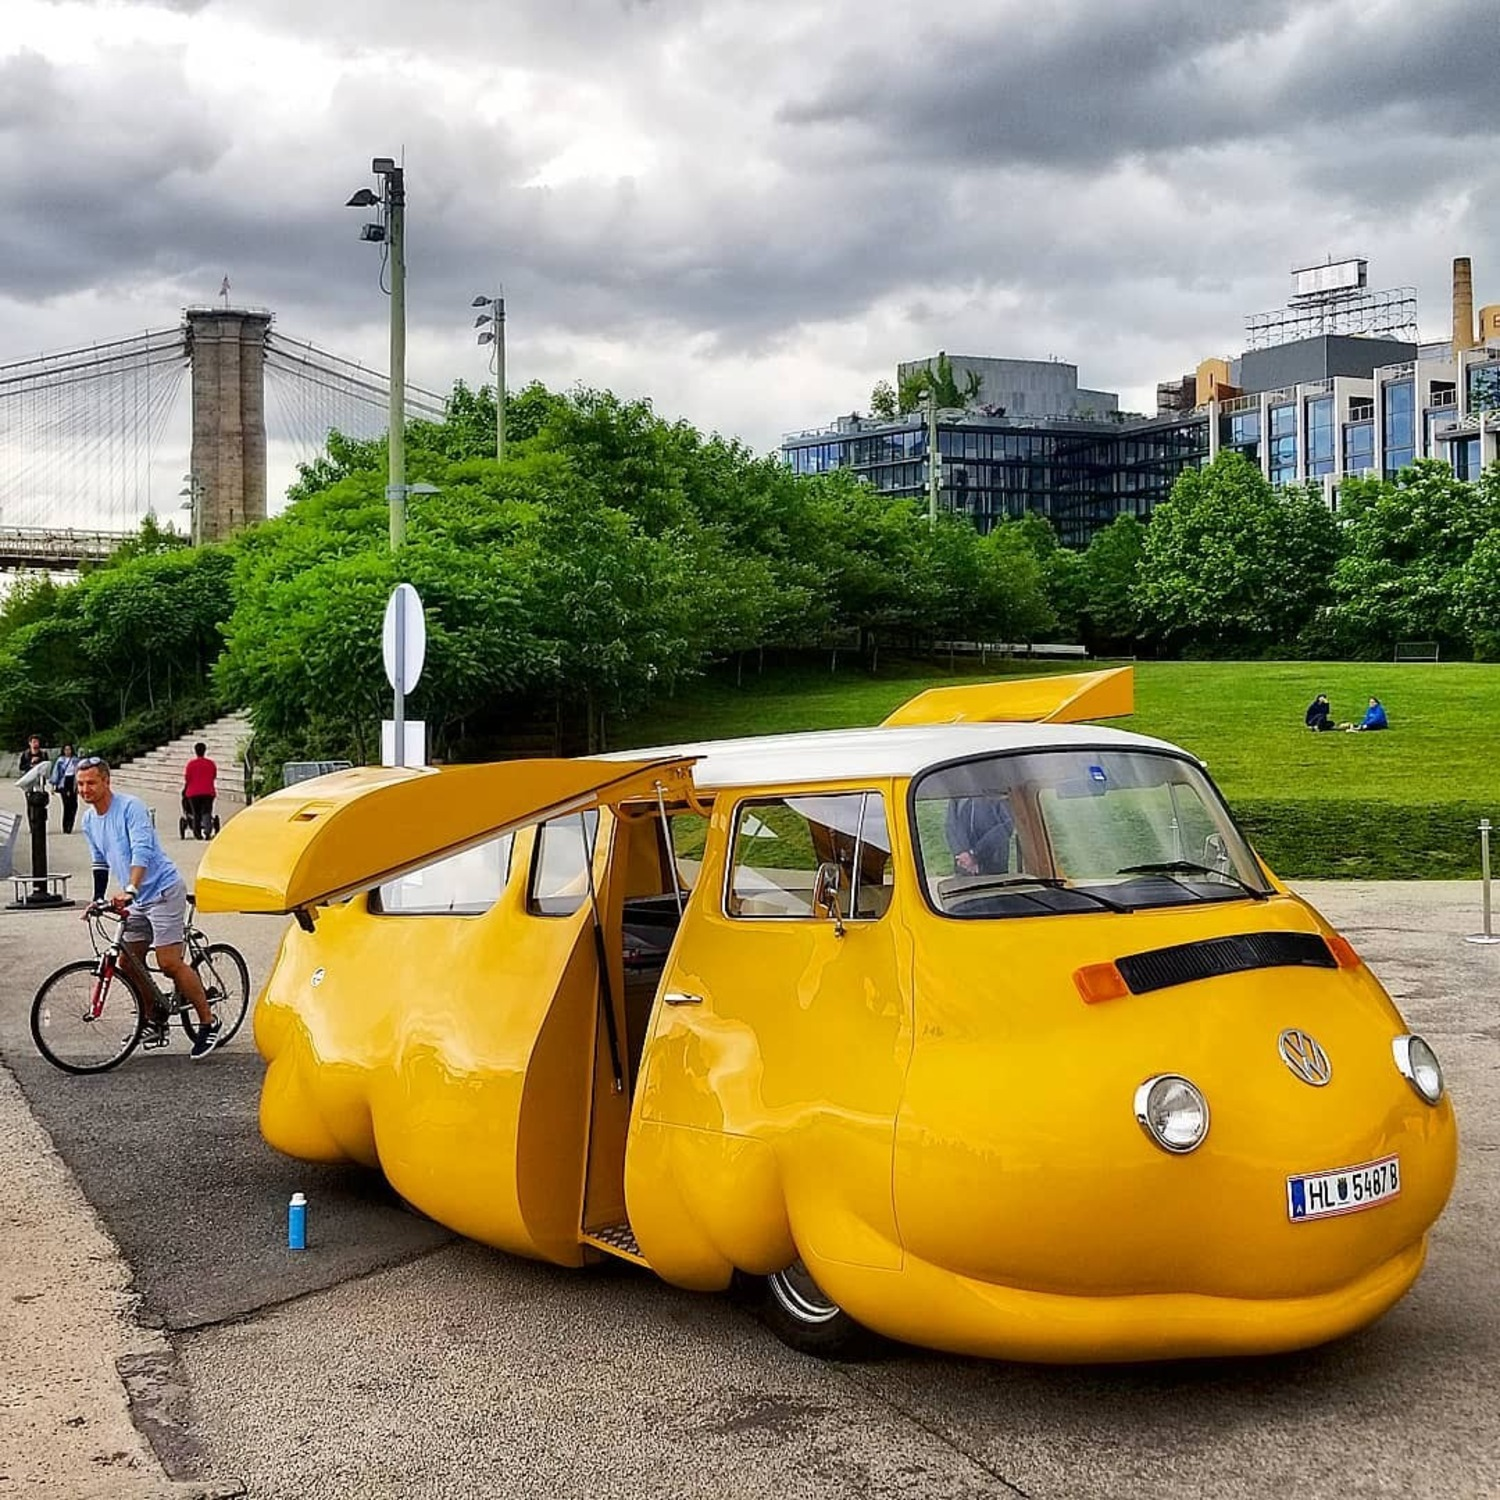 Free beef hot dogs every weekend from June 9 to August 26 at the @brooklynbridgepark #HotDogBus. This #vw #minibus by #Austrian @erwinwurm is opening tonight. . . . #brooklynbridgepark #brooklynbridge #erwinwurm #publicart #publicartfund #hotdog #summerinnewyork #wildnewyork#aussiesofinstagram #instanewyork#newyorkfood #peopleofnewyork #expatliving#travelideas #newyorksummer#amazingclouds#beautifullandscapes #travelnyc #aussieinnyc#whyilovenewyorkcity#what_i_saw_in_nyc #nyloveyou #nycityworld #loves_nyc #picturesofnewyork #newyork_instagram ❤️🇺🇸🇵🇫